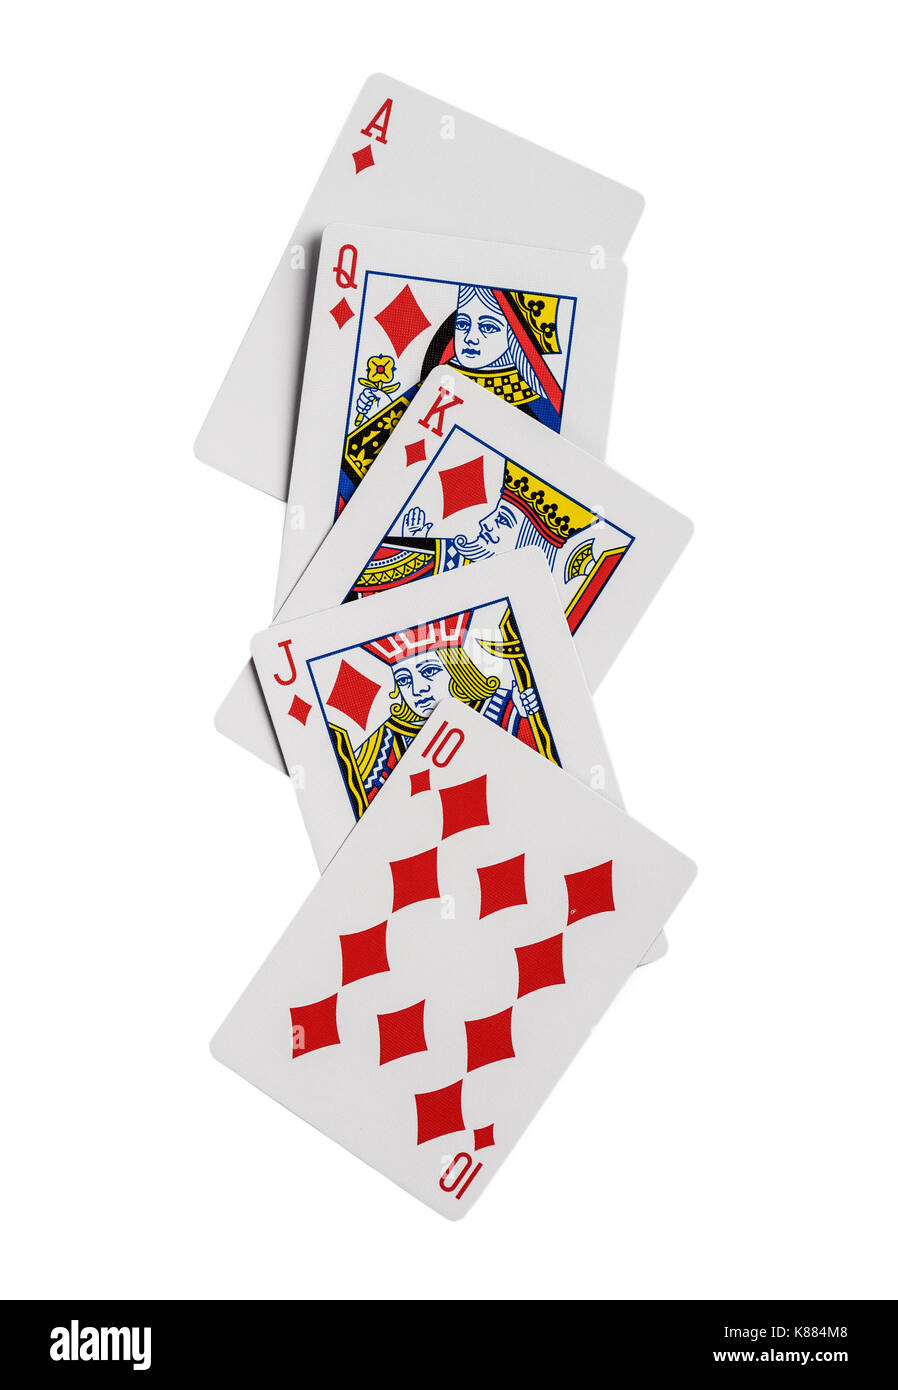 Combination of playing cards diamonds suit poker casino. Isolated on white background - Stock Image